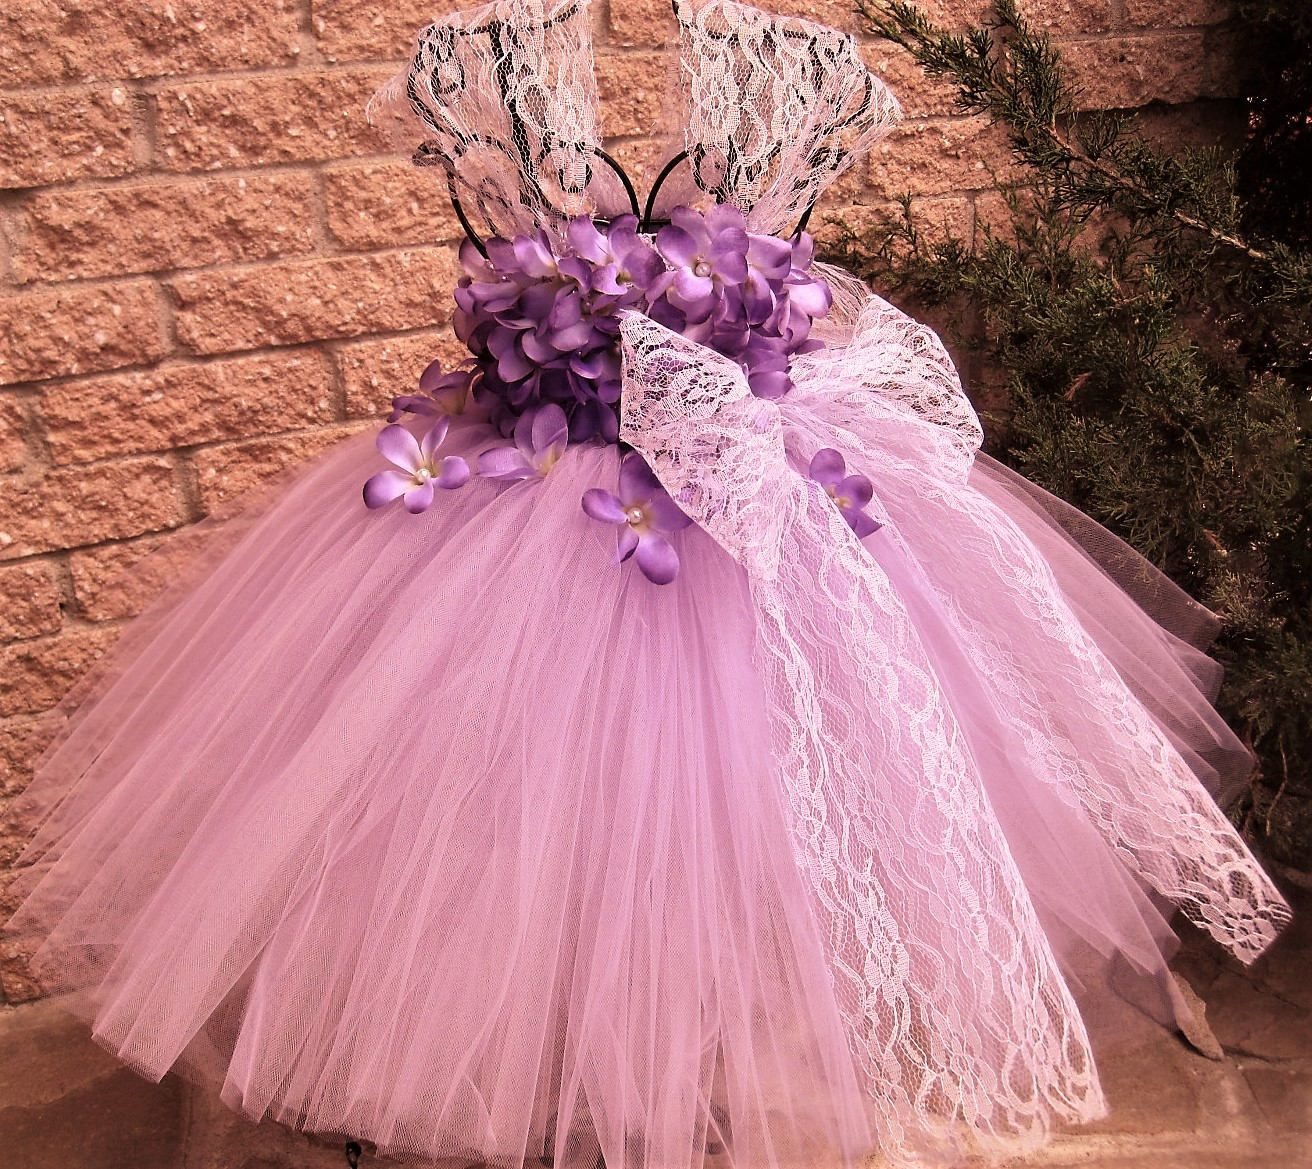 Lilac Flowers With Lace Lilac Tutu Dress Purple Lace Tutu Flower Girl Gown Pageant Girl Dress Flower Girl Dresses Tutu Flower Girl Gown Lavender Lace Dress [ 1169 x 1312 Pixel ]